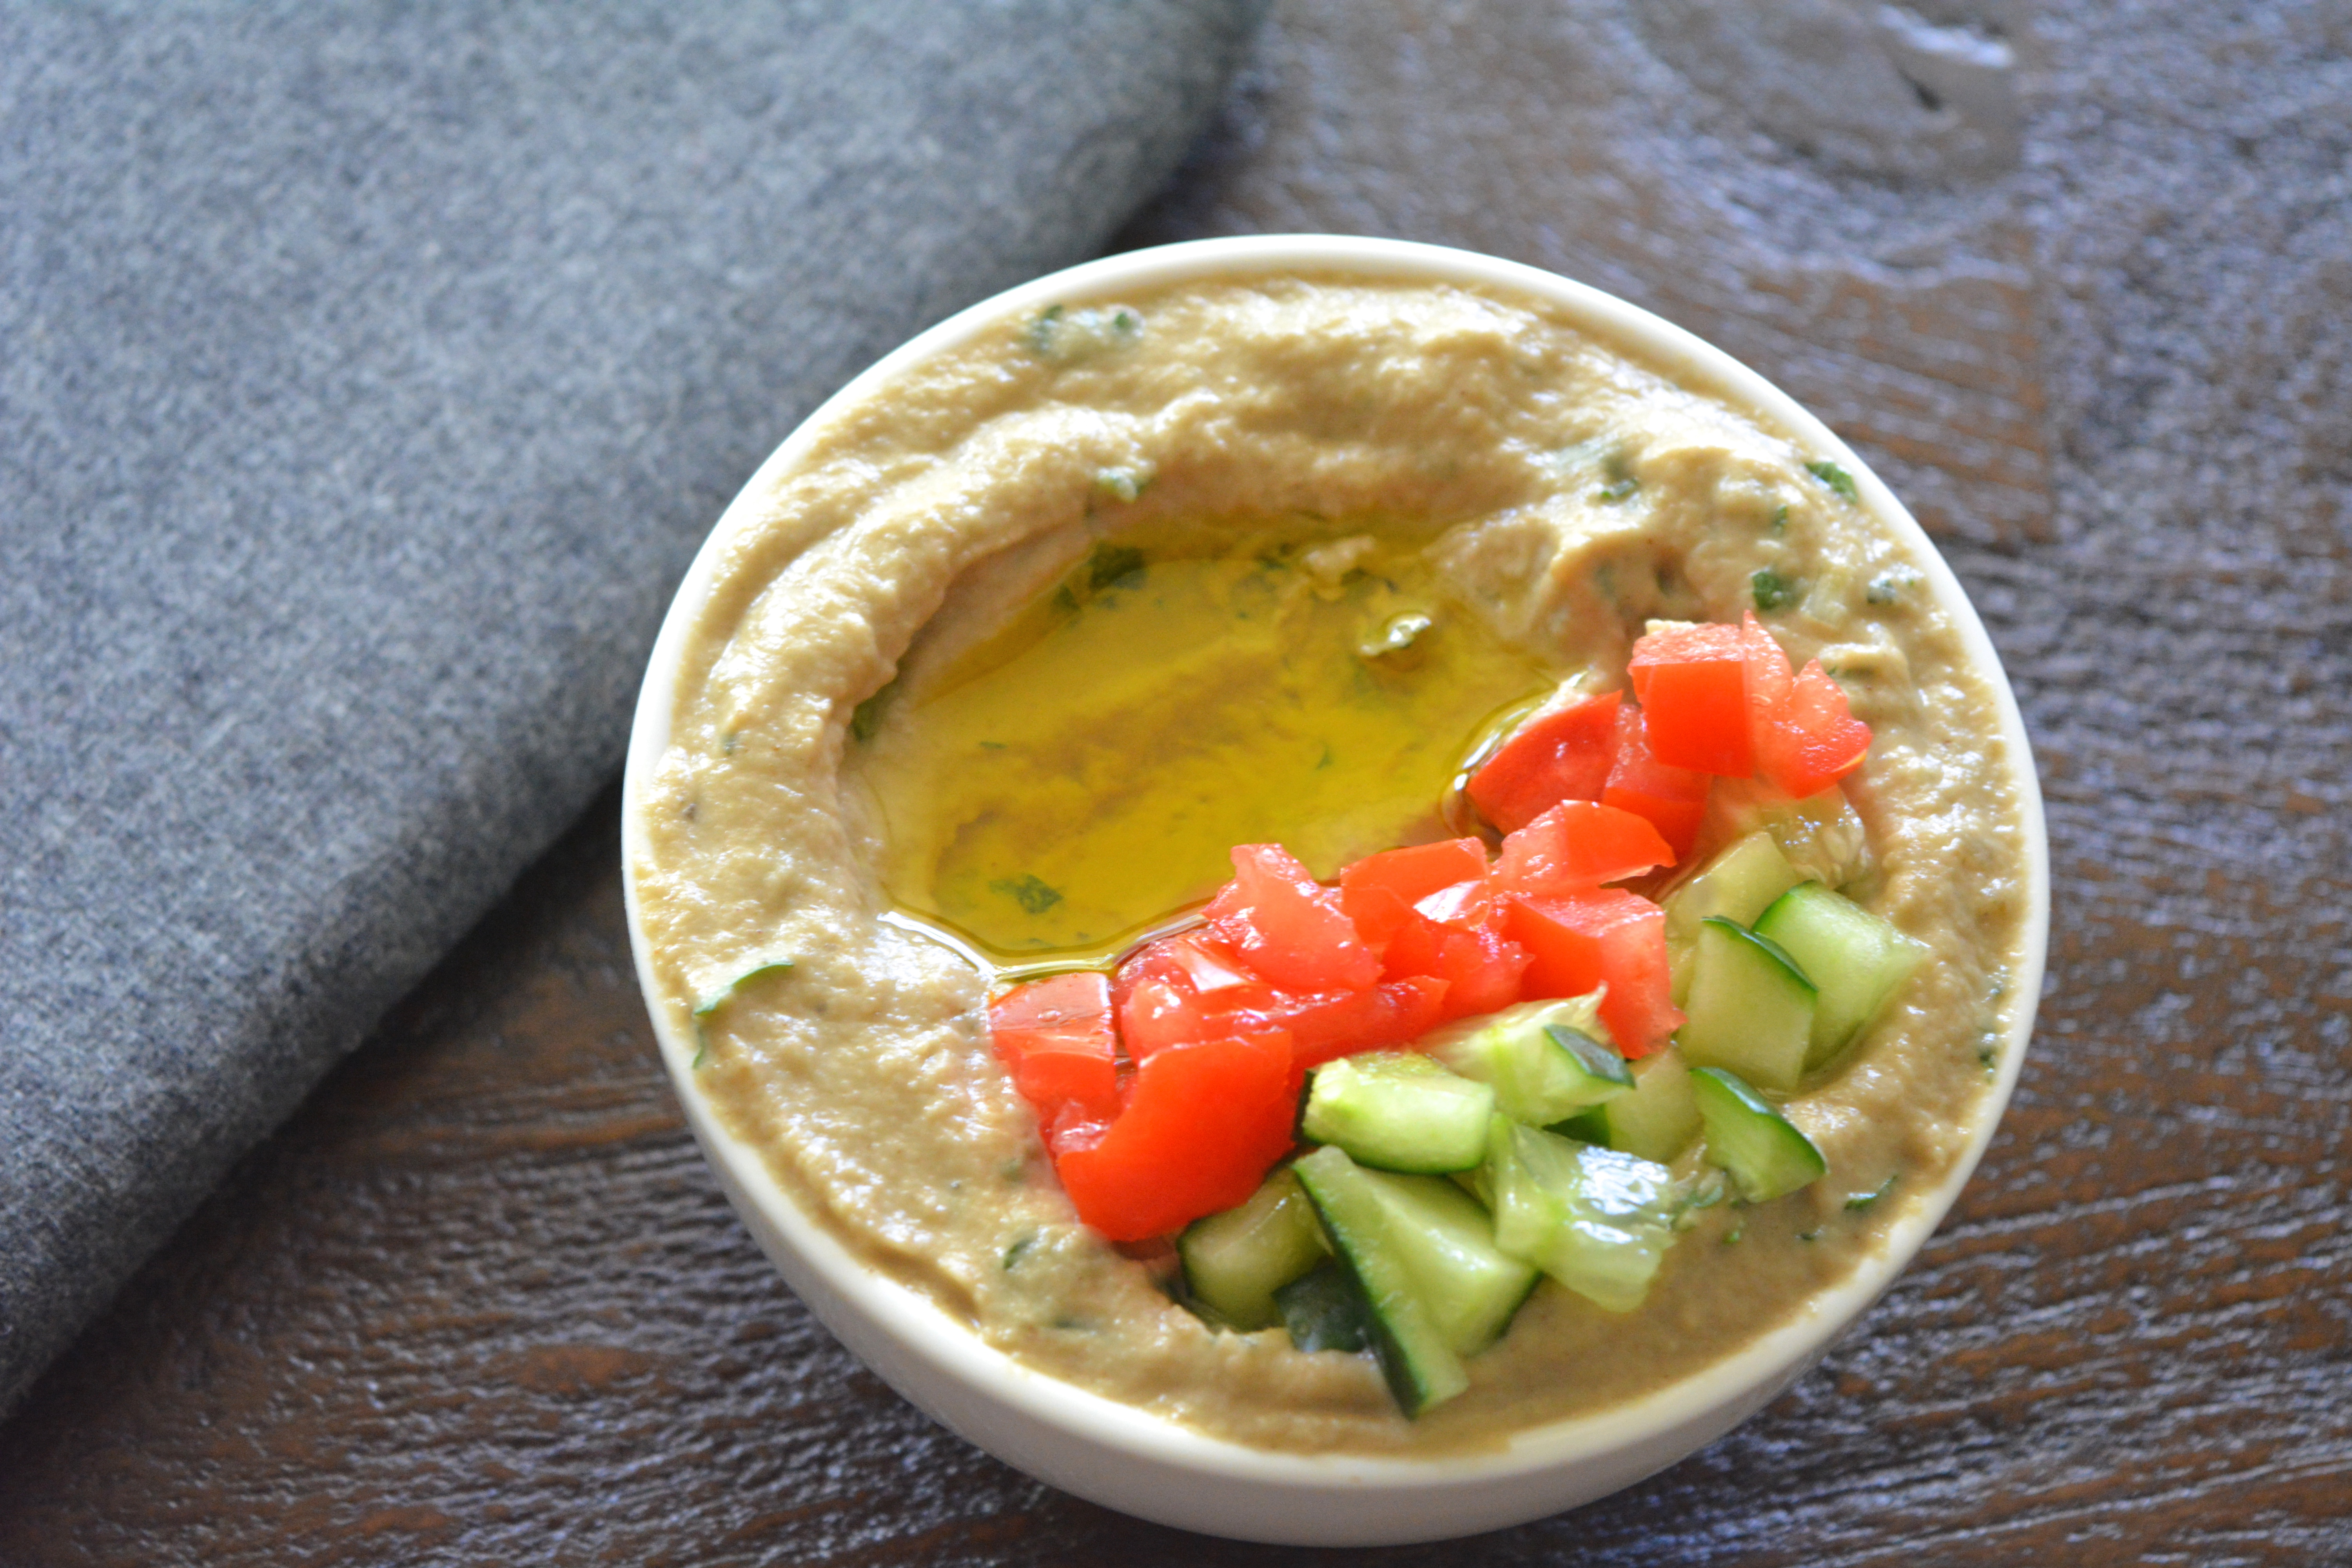 Meatless Monday-Omar's Baba Ganoush